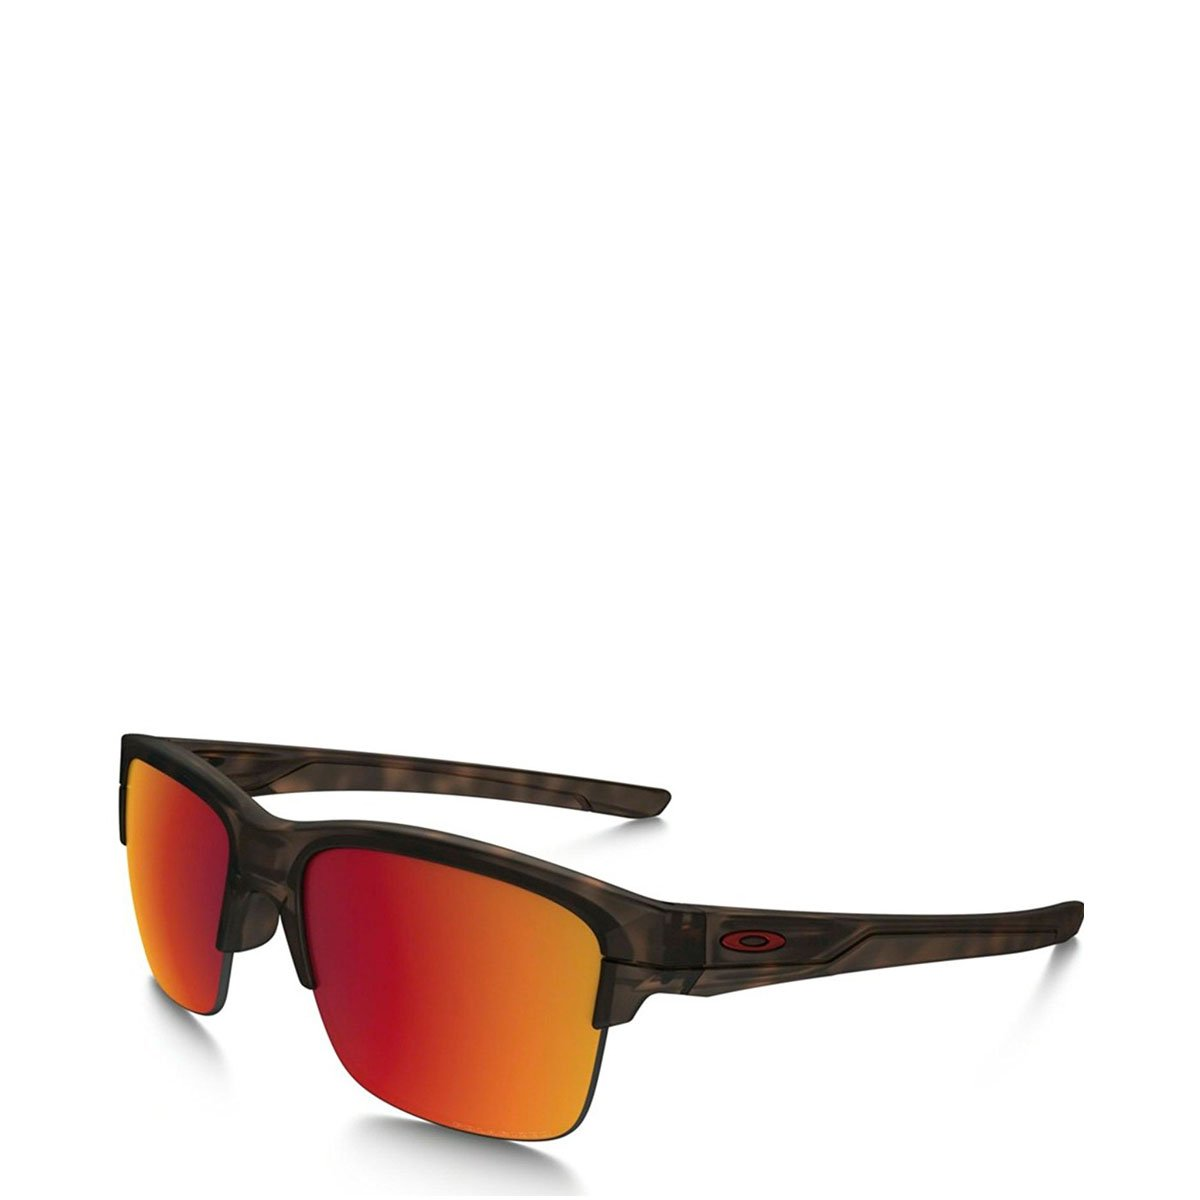 [OO9317-06] Mens Oakley (Asian Fit) Thinlink Sunglasses